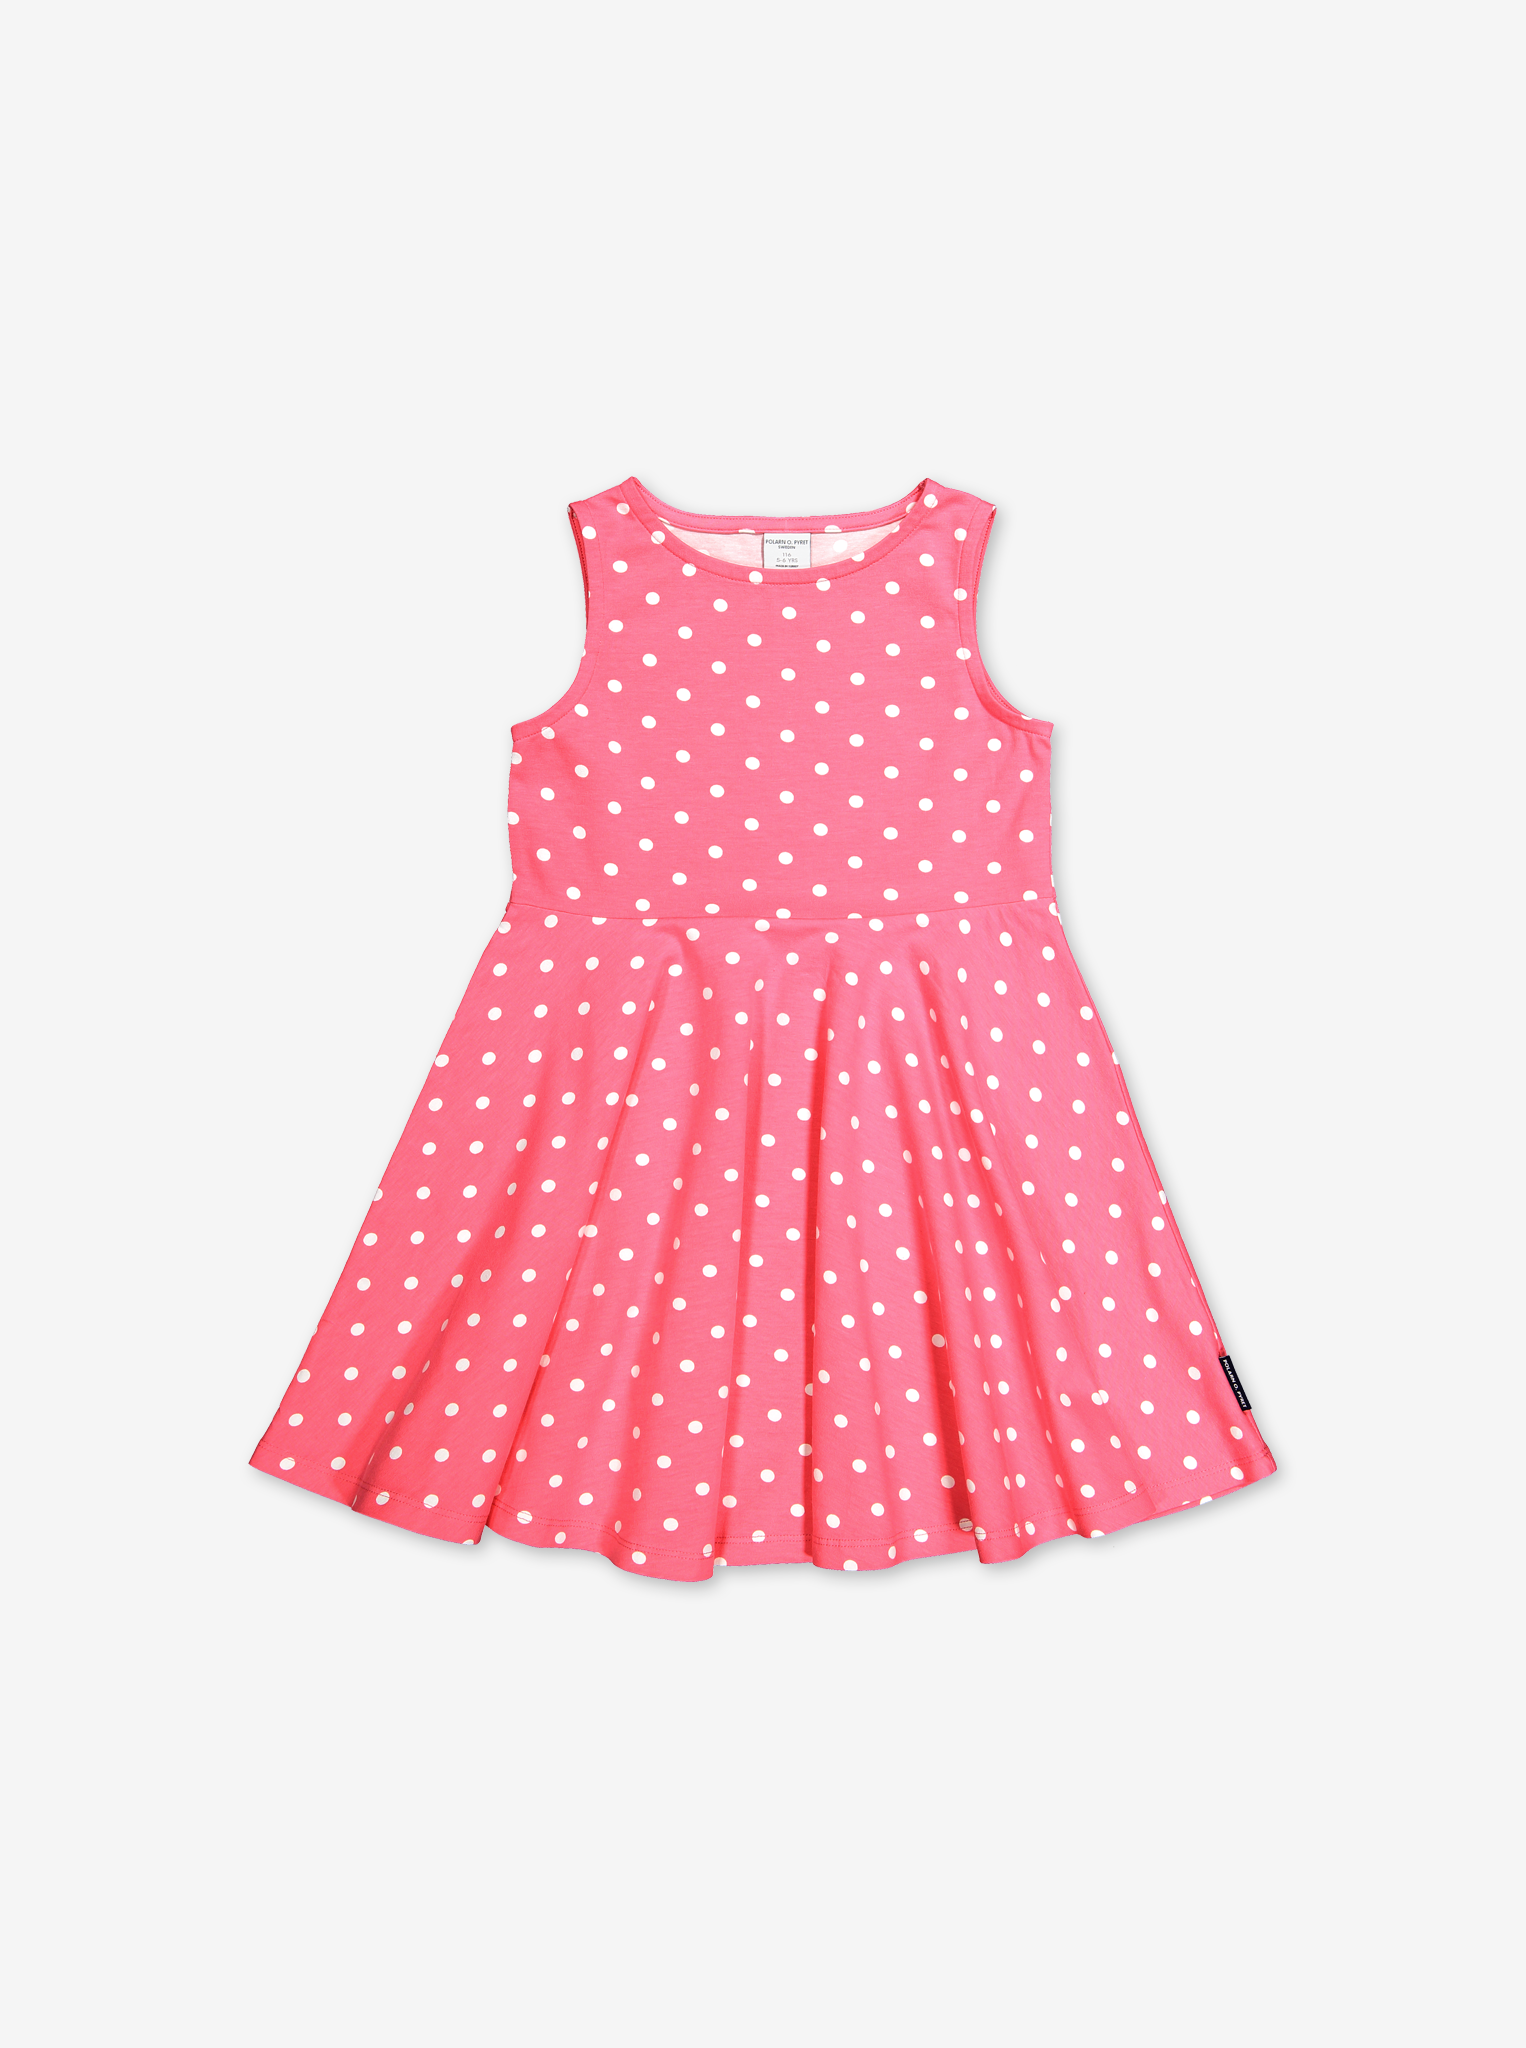 Polka Dot Kids Dress-Girl-1-6y-Pink